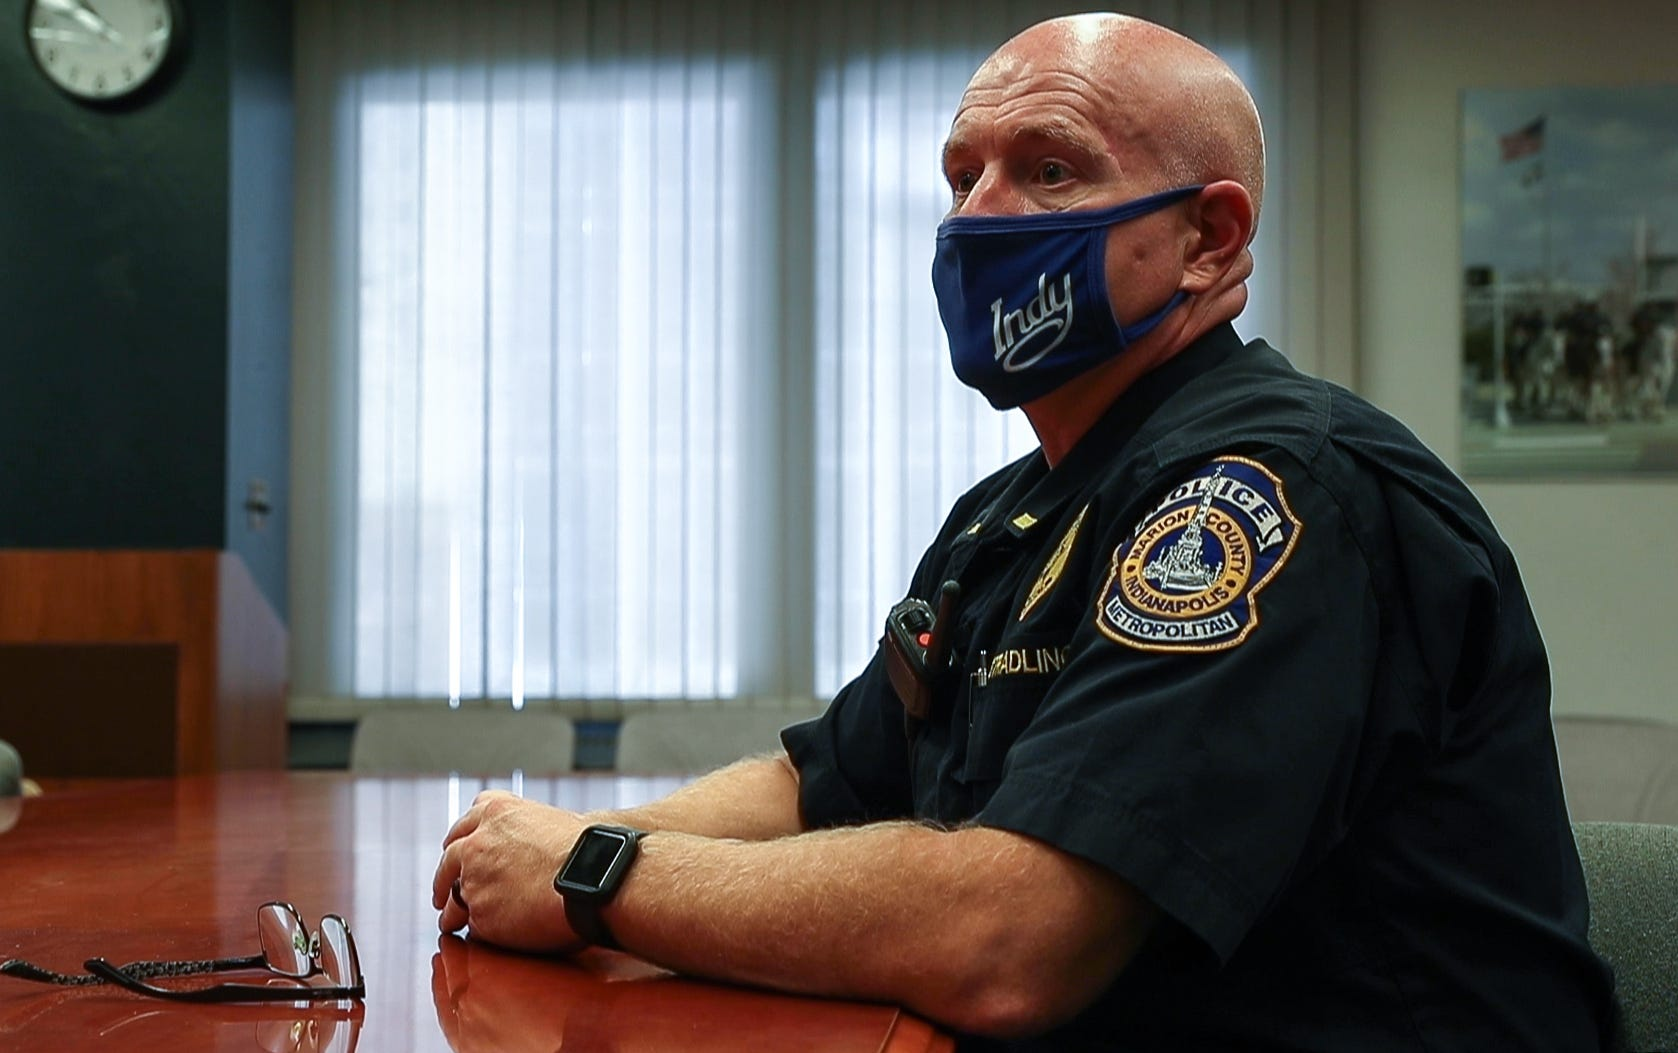 Lt. Robert Stradling, of the Indianapolis Metropolitan Police Department (IMPD), speaks with IndyStar at the City-County Building in Indianapolis on June 30, 2020. Stradling has supervised the department's K-9 unit for more than two years.